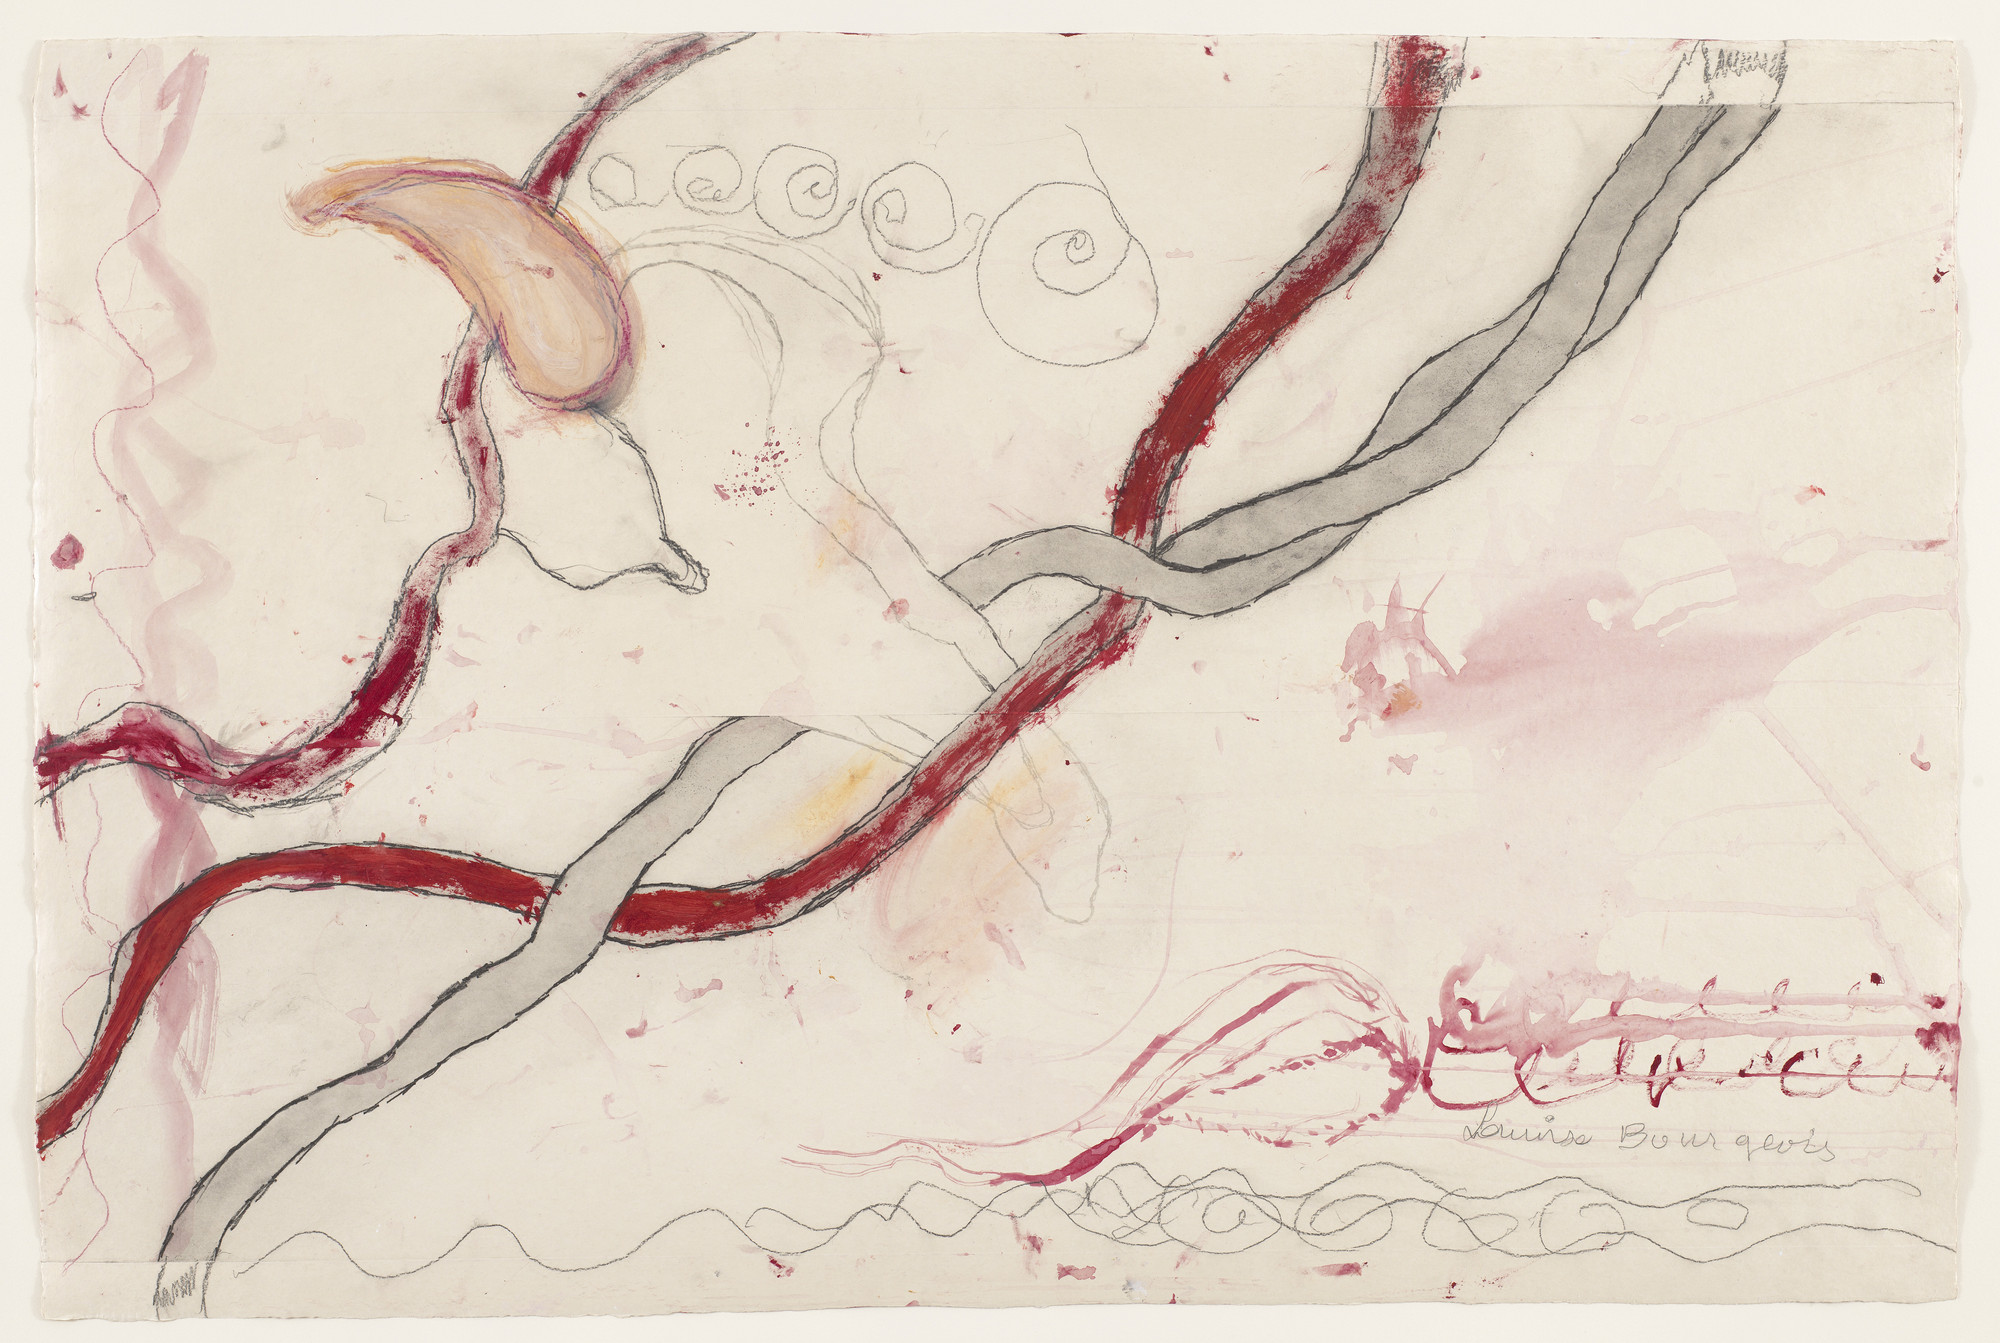 Louise Bourgeois. Untitled, no. 2 of 14, from À l'Infini (set 1). 2008